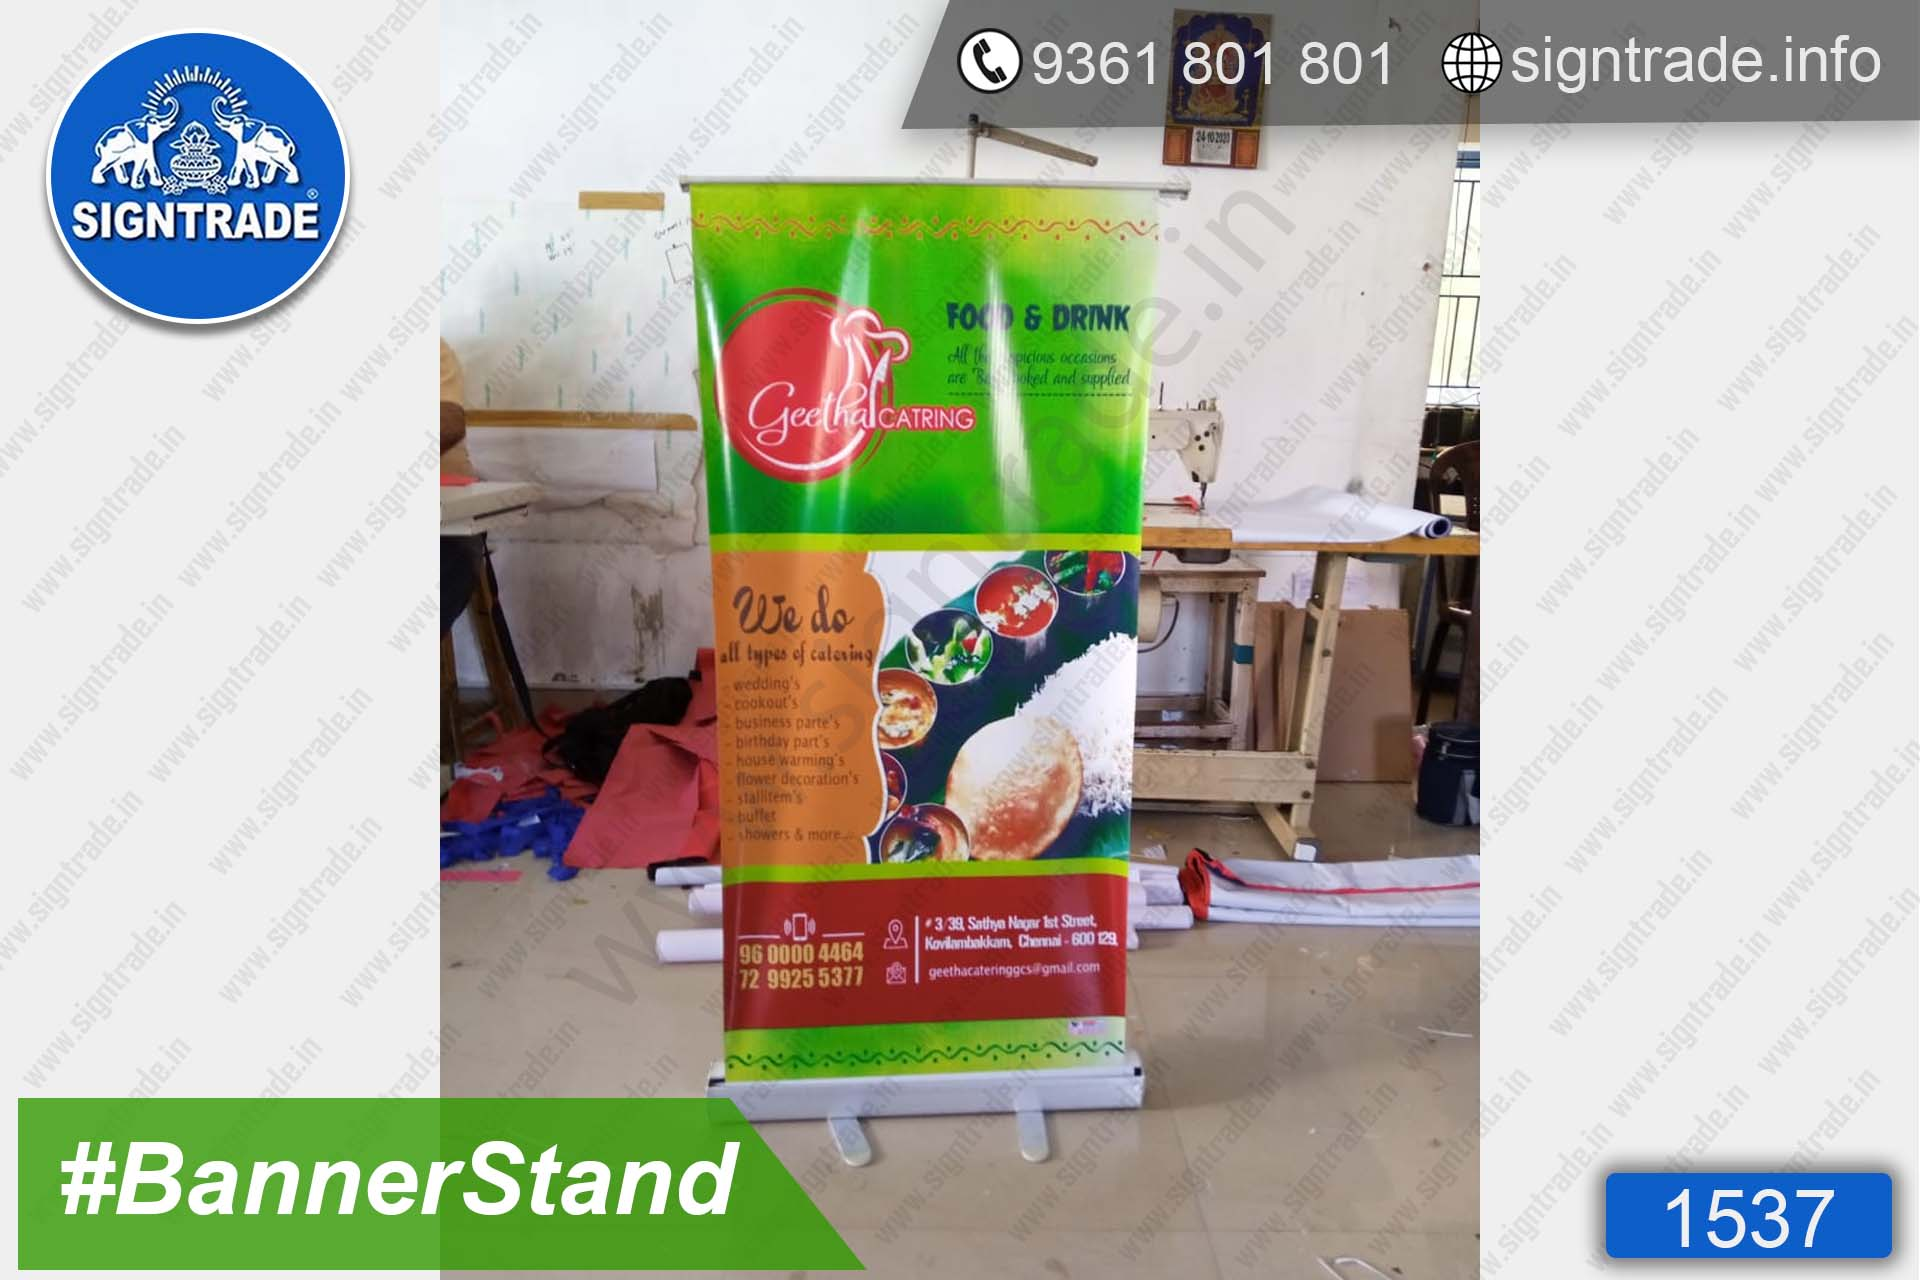 Geetha Catering Service - Chennai - SIGNTRADE - Roll Up Banner Stand Manufacturers in Chennai